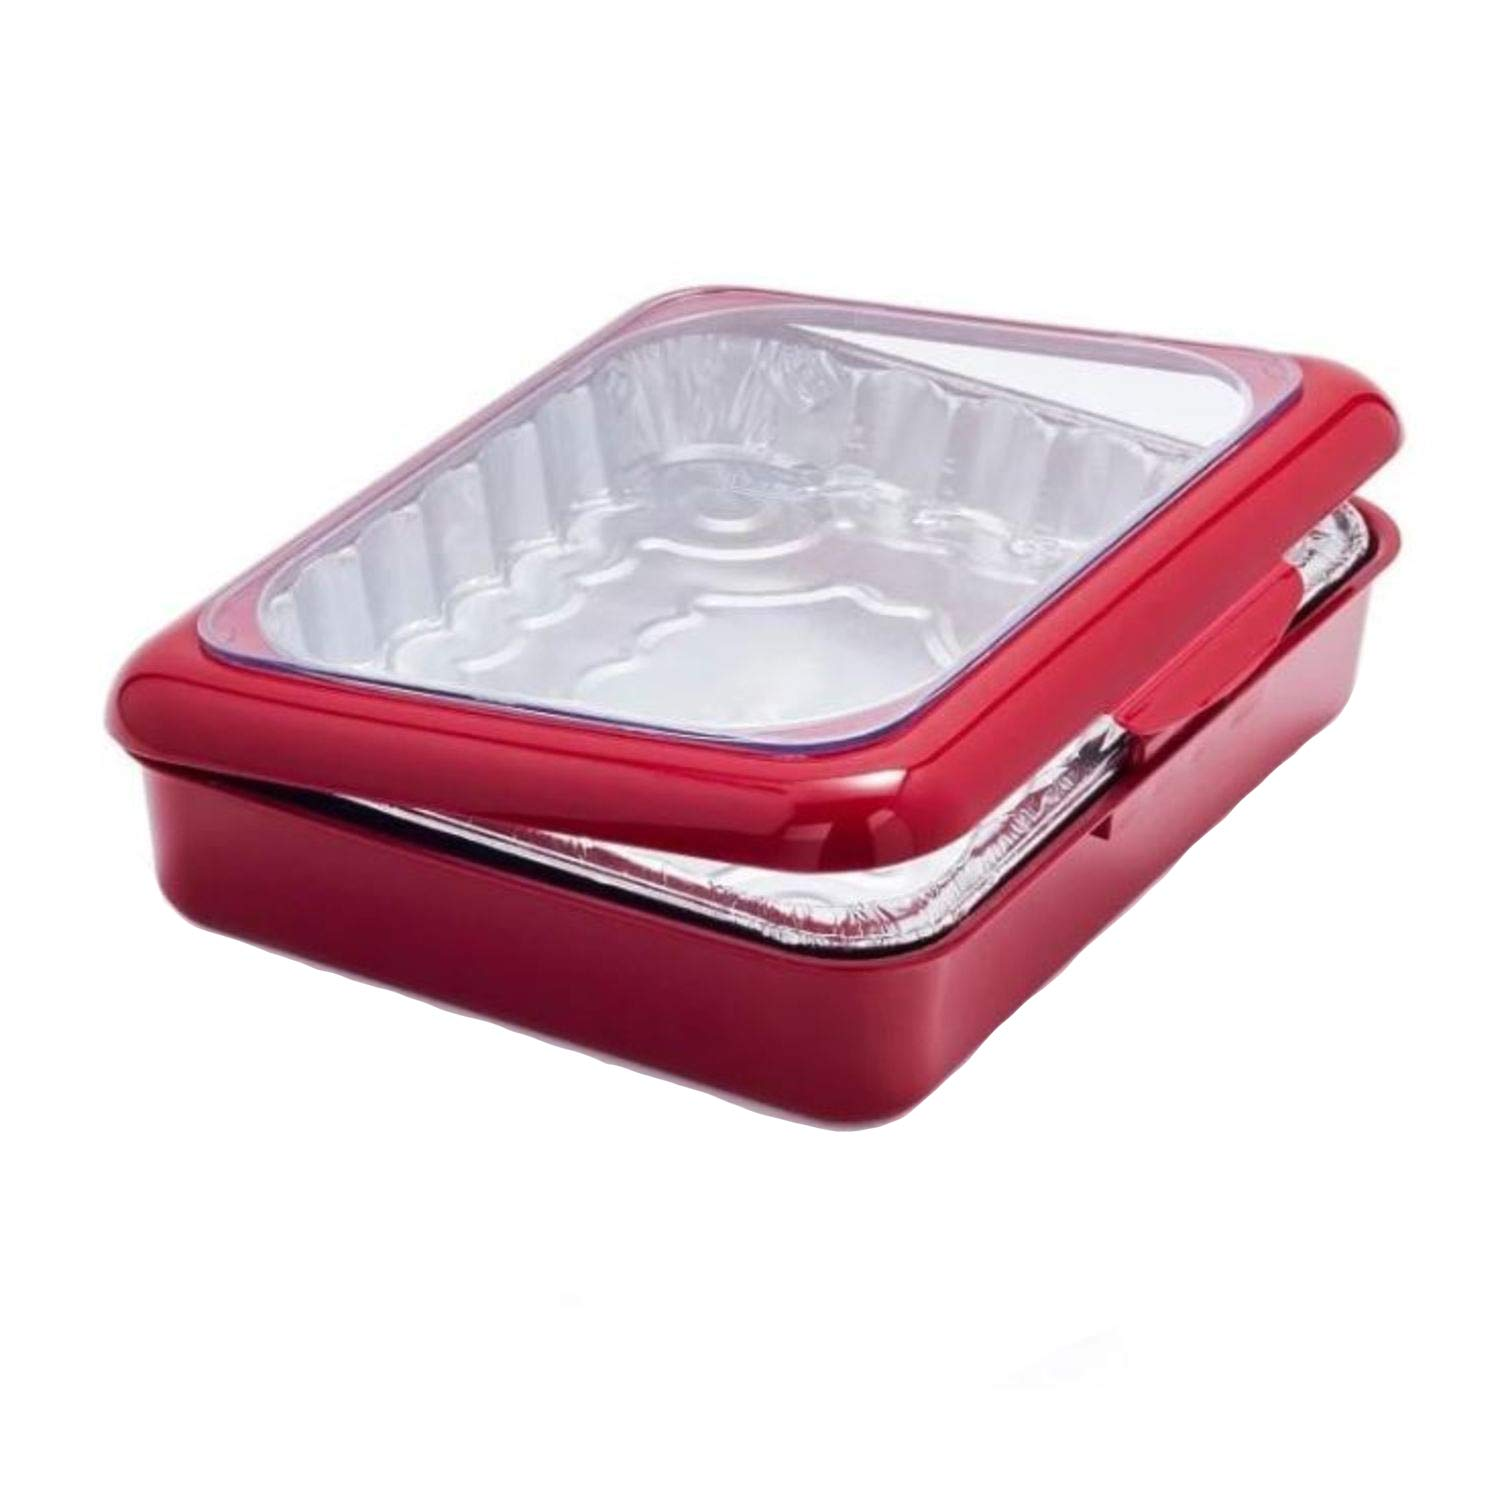 Yakio 2019 The Classy Casserole Carrier (Red) by Yakio